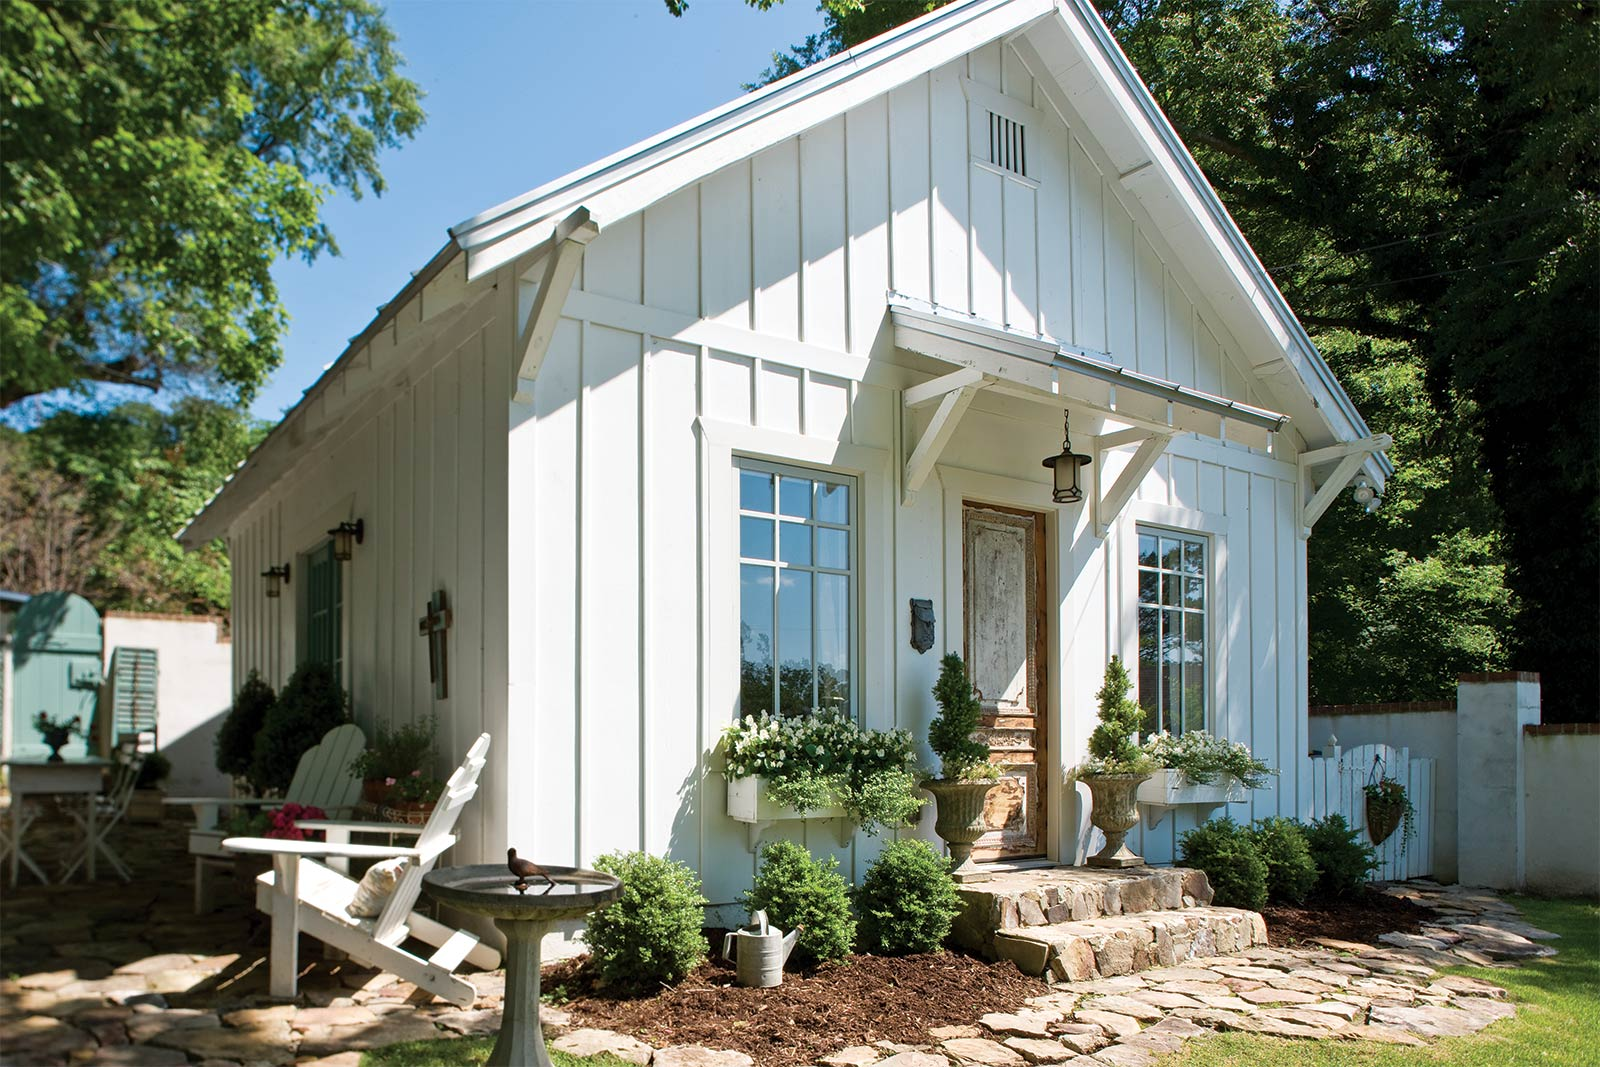 Charming Vintage French Cottage The Cottage Journal